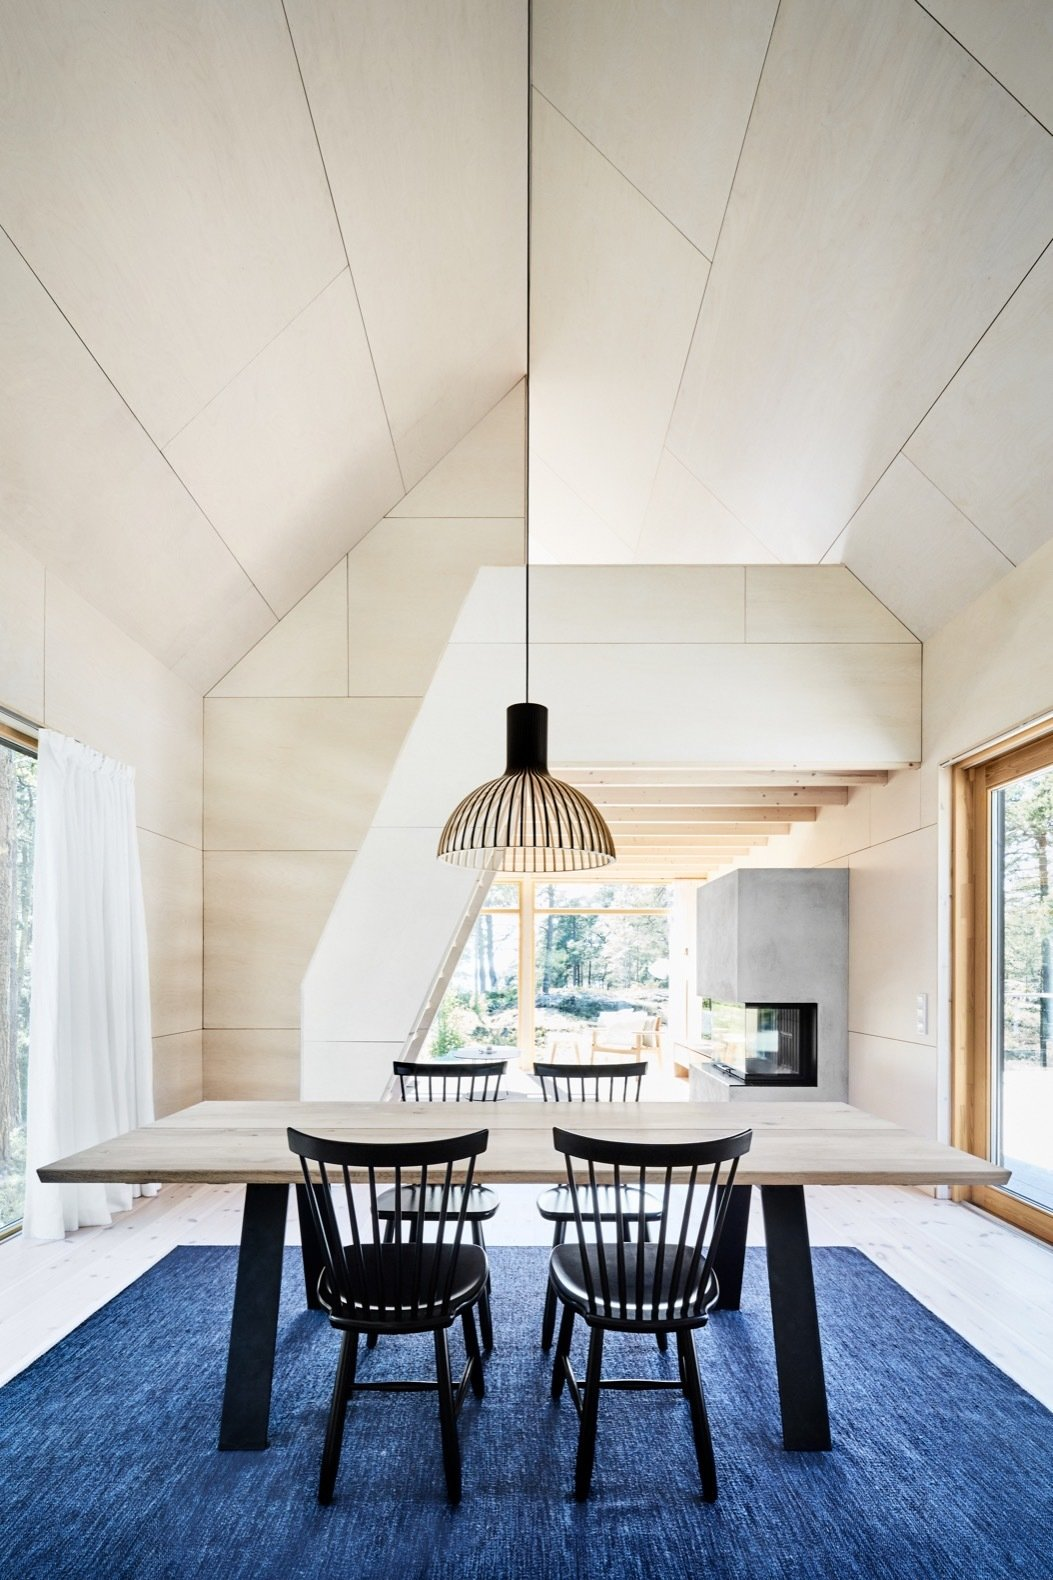 Dining Room, Pendant Lighting, Table, Chair, Light Hardwood Floor, Rug Floor, Gas Burning Fireplace, and Ribbon Fireplace White-washed birch plywood has been used for the interior walls.    Best Photos from An Inspiring Island Retreat Mixes Scandinavian Style With Japanese Simplicity